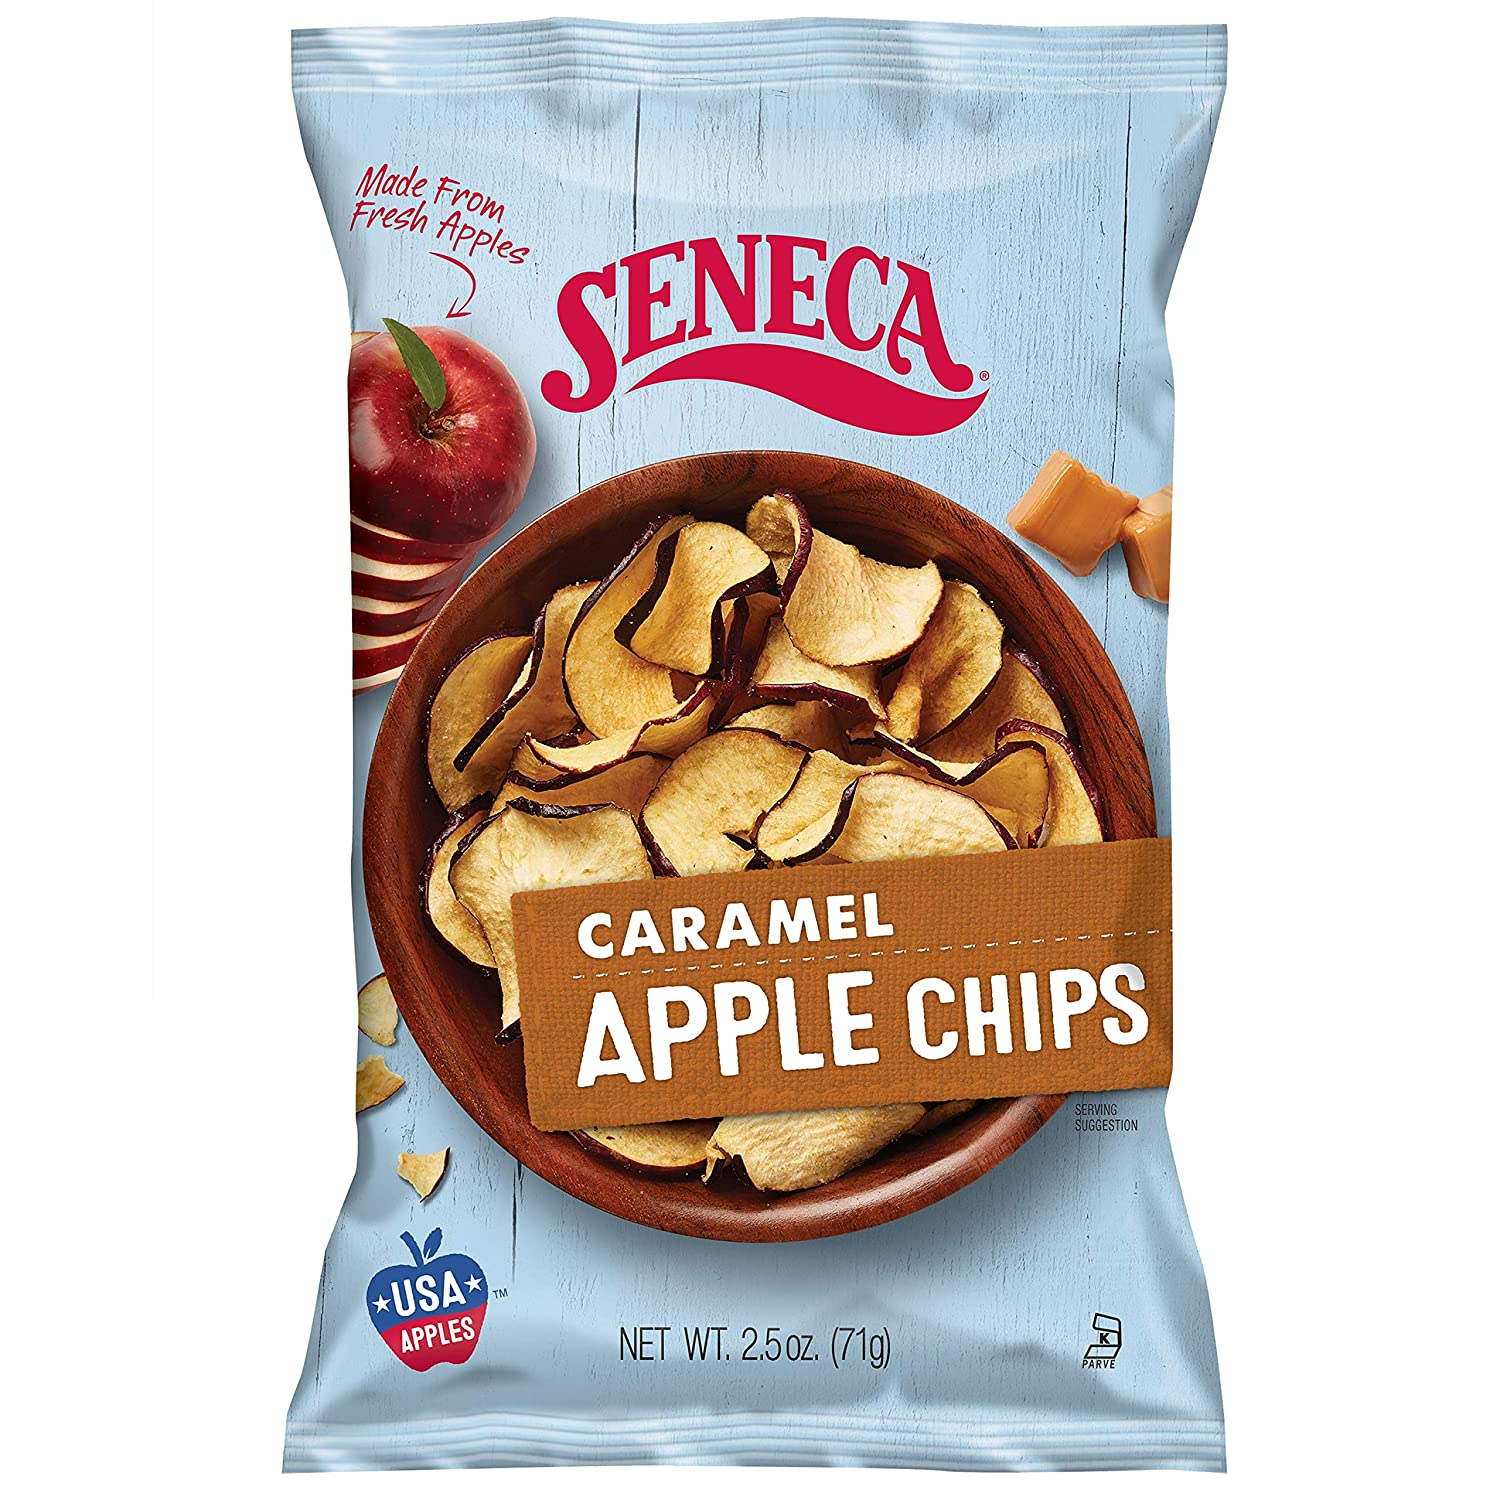 Seneca Caramel Apple Chips | Made from Fresh Apples | 100% Red Delicious Apples | Yakima Valley Orchards | Crisped Apple Perfection | Foil-Lined Freshness Bag | 2.5 ounce (Pack of 12)